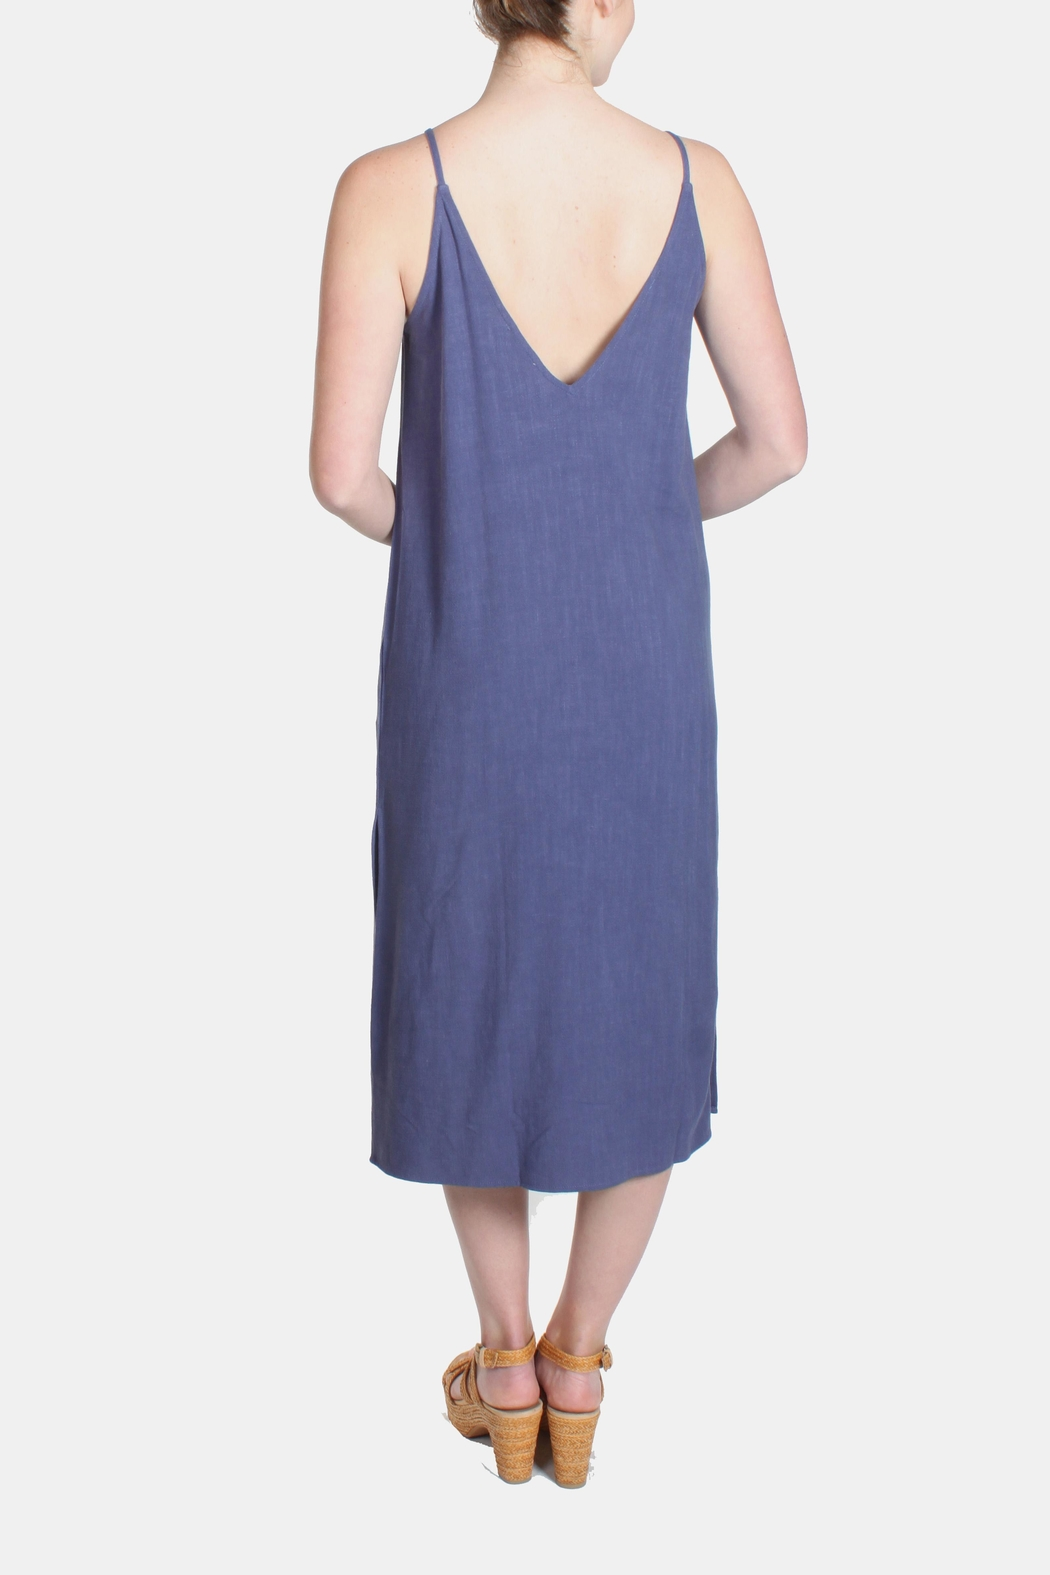 Jella Couture Periwinkle Linen Slip Dress - Front Full Image